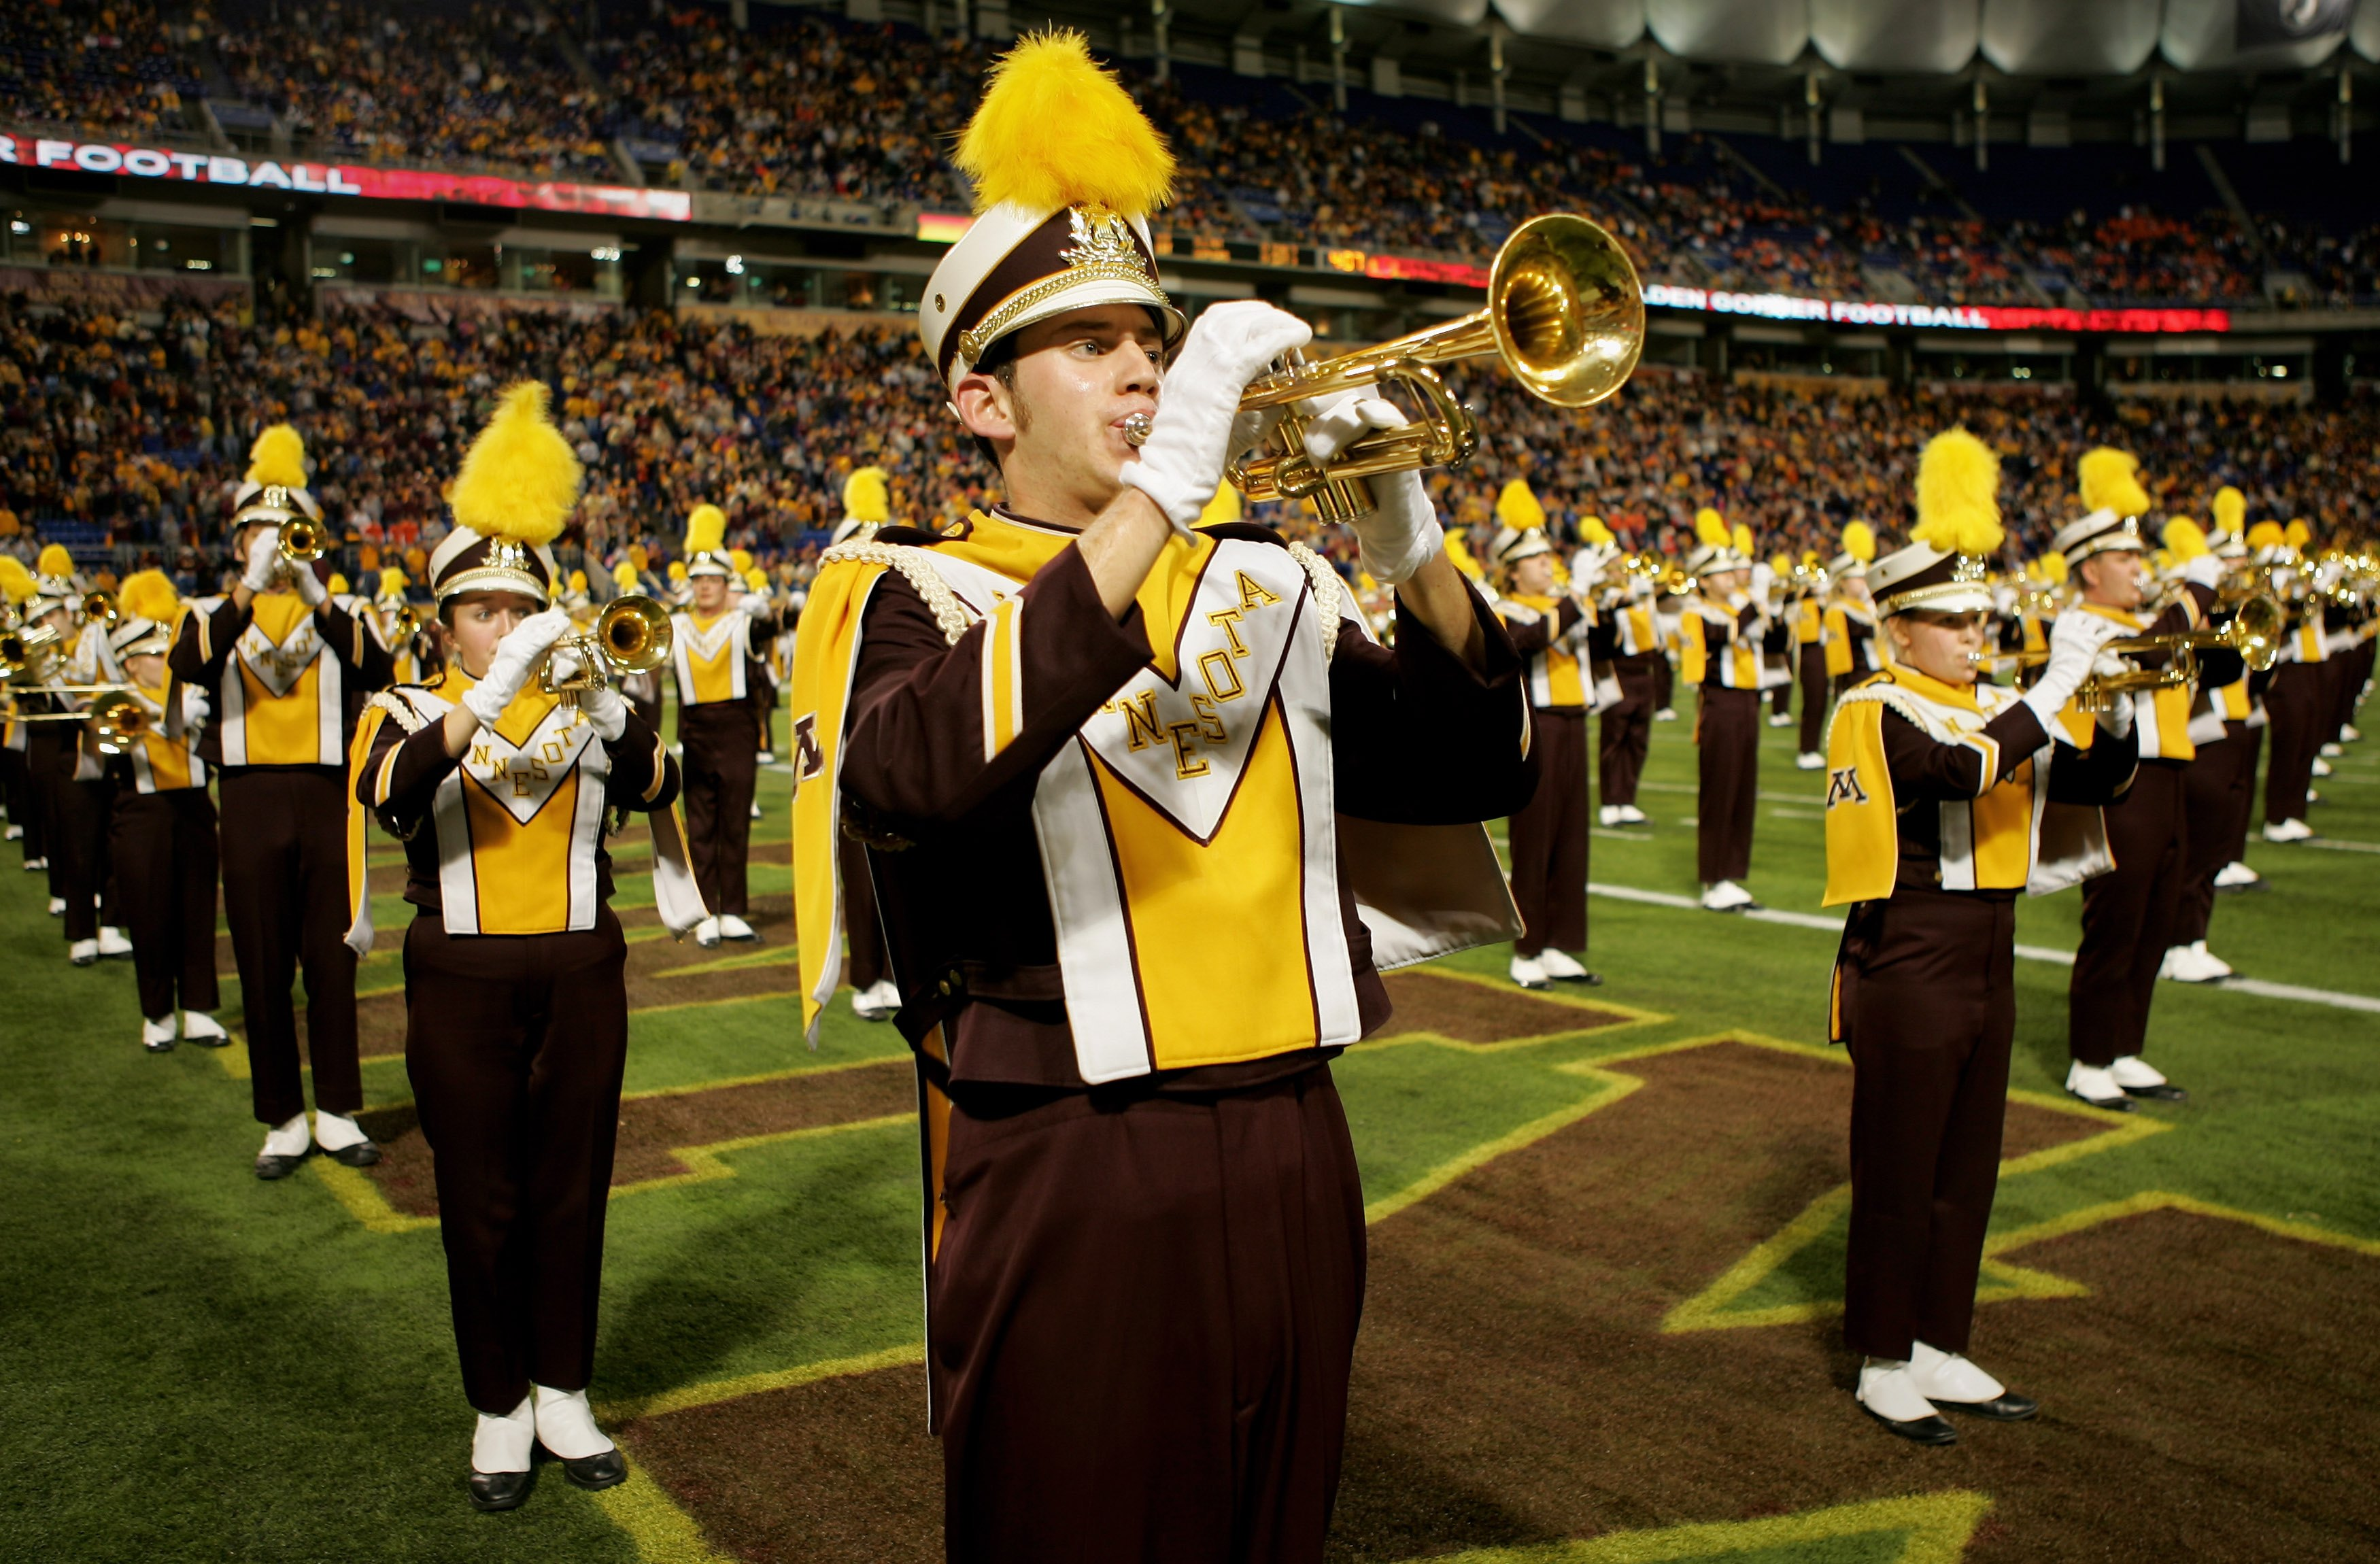 MINNEAPOLIS, MN - NOVEMBER 03:  The Minnesota Golden Gophers marching band performs prior to facing the Illinois Fighting Illini at the Hubert H. Humphrey Metrodome on November 3, 2007 in Minneapolis, Minnesota. Illinois defeated Minnesota 44-17.  (Photo by Doug Pensinger/Getty Images)